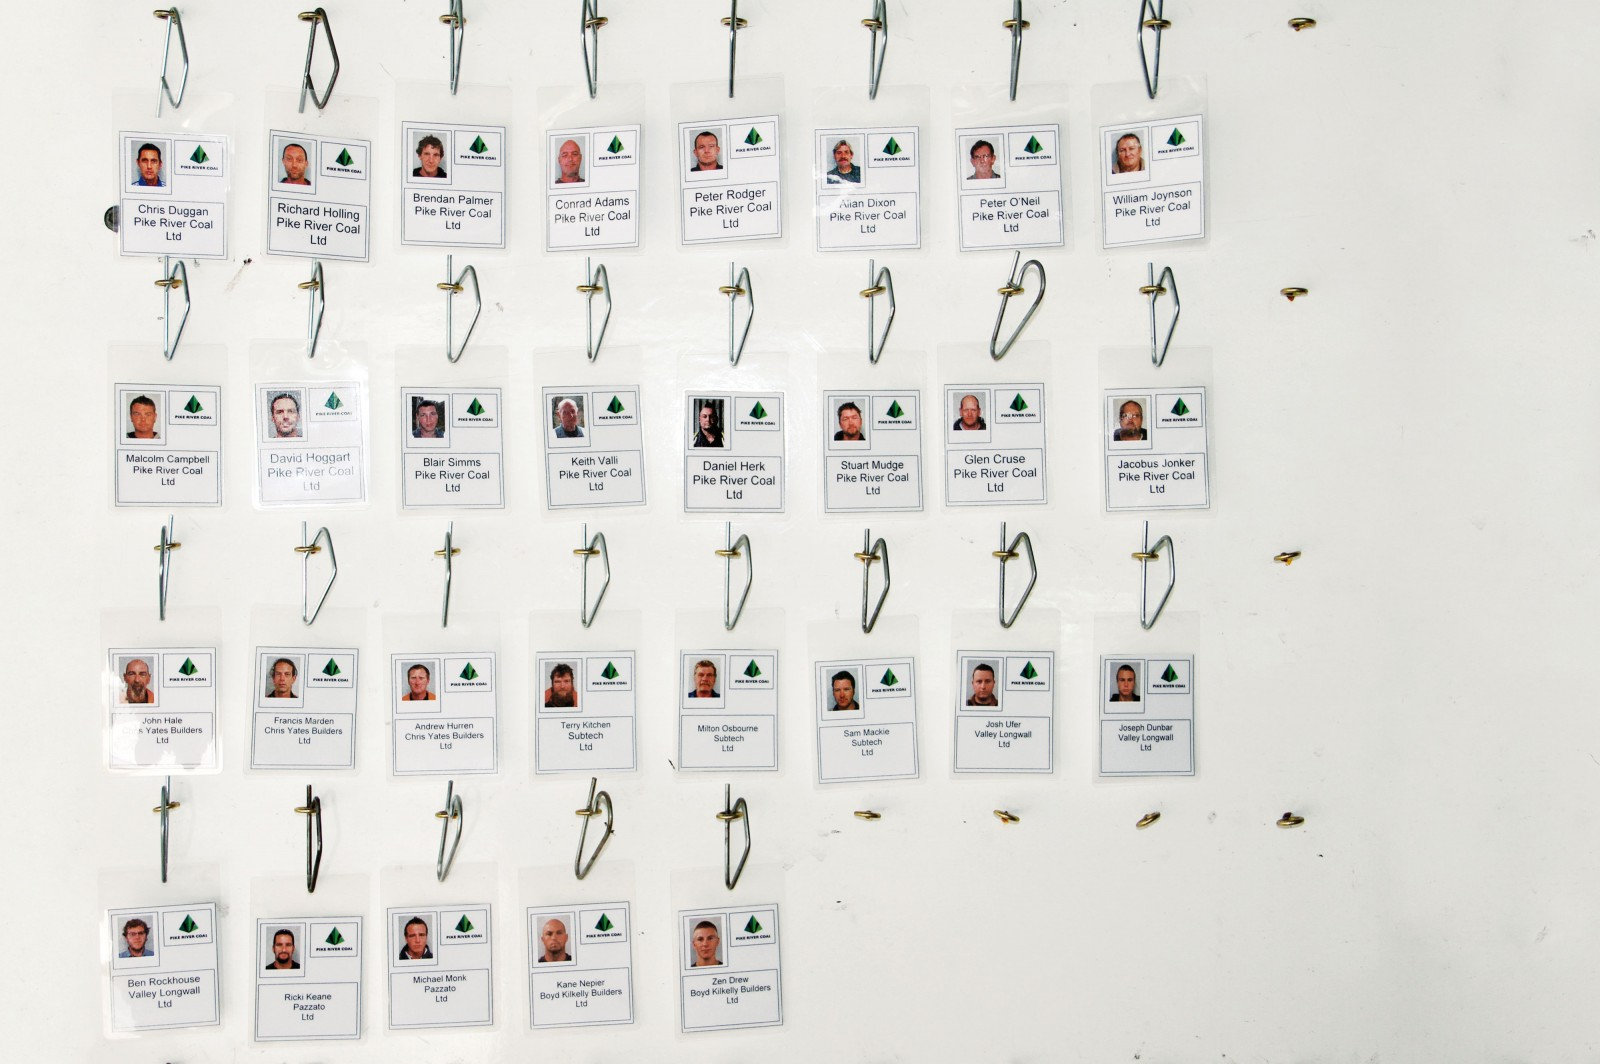 Faces of the 29 men trapped in the Pike River Coal Mine stare from a tag board—a system used to keep track of who is underground at any given time.